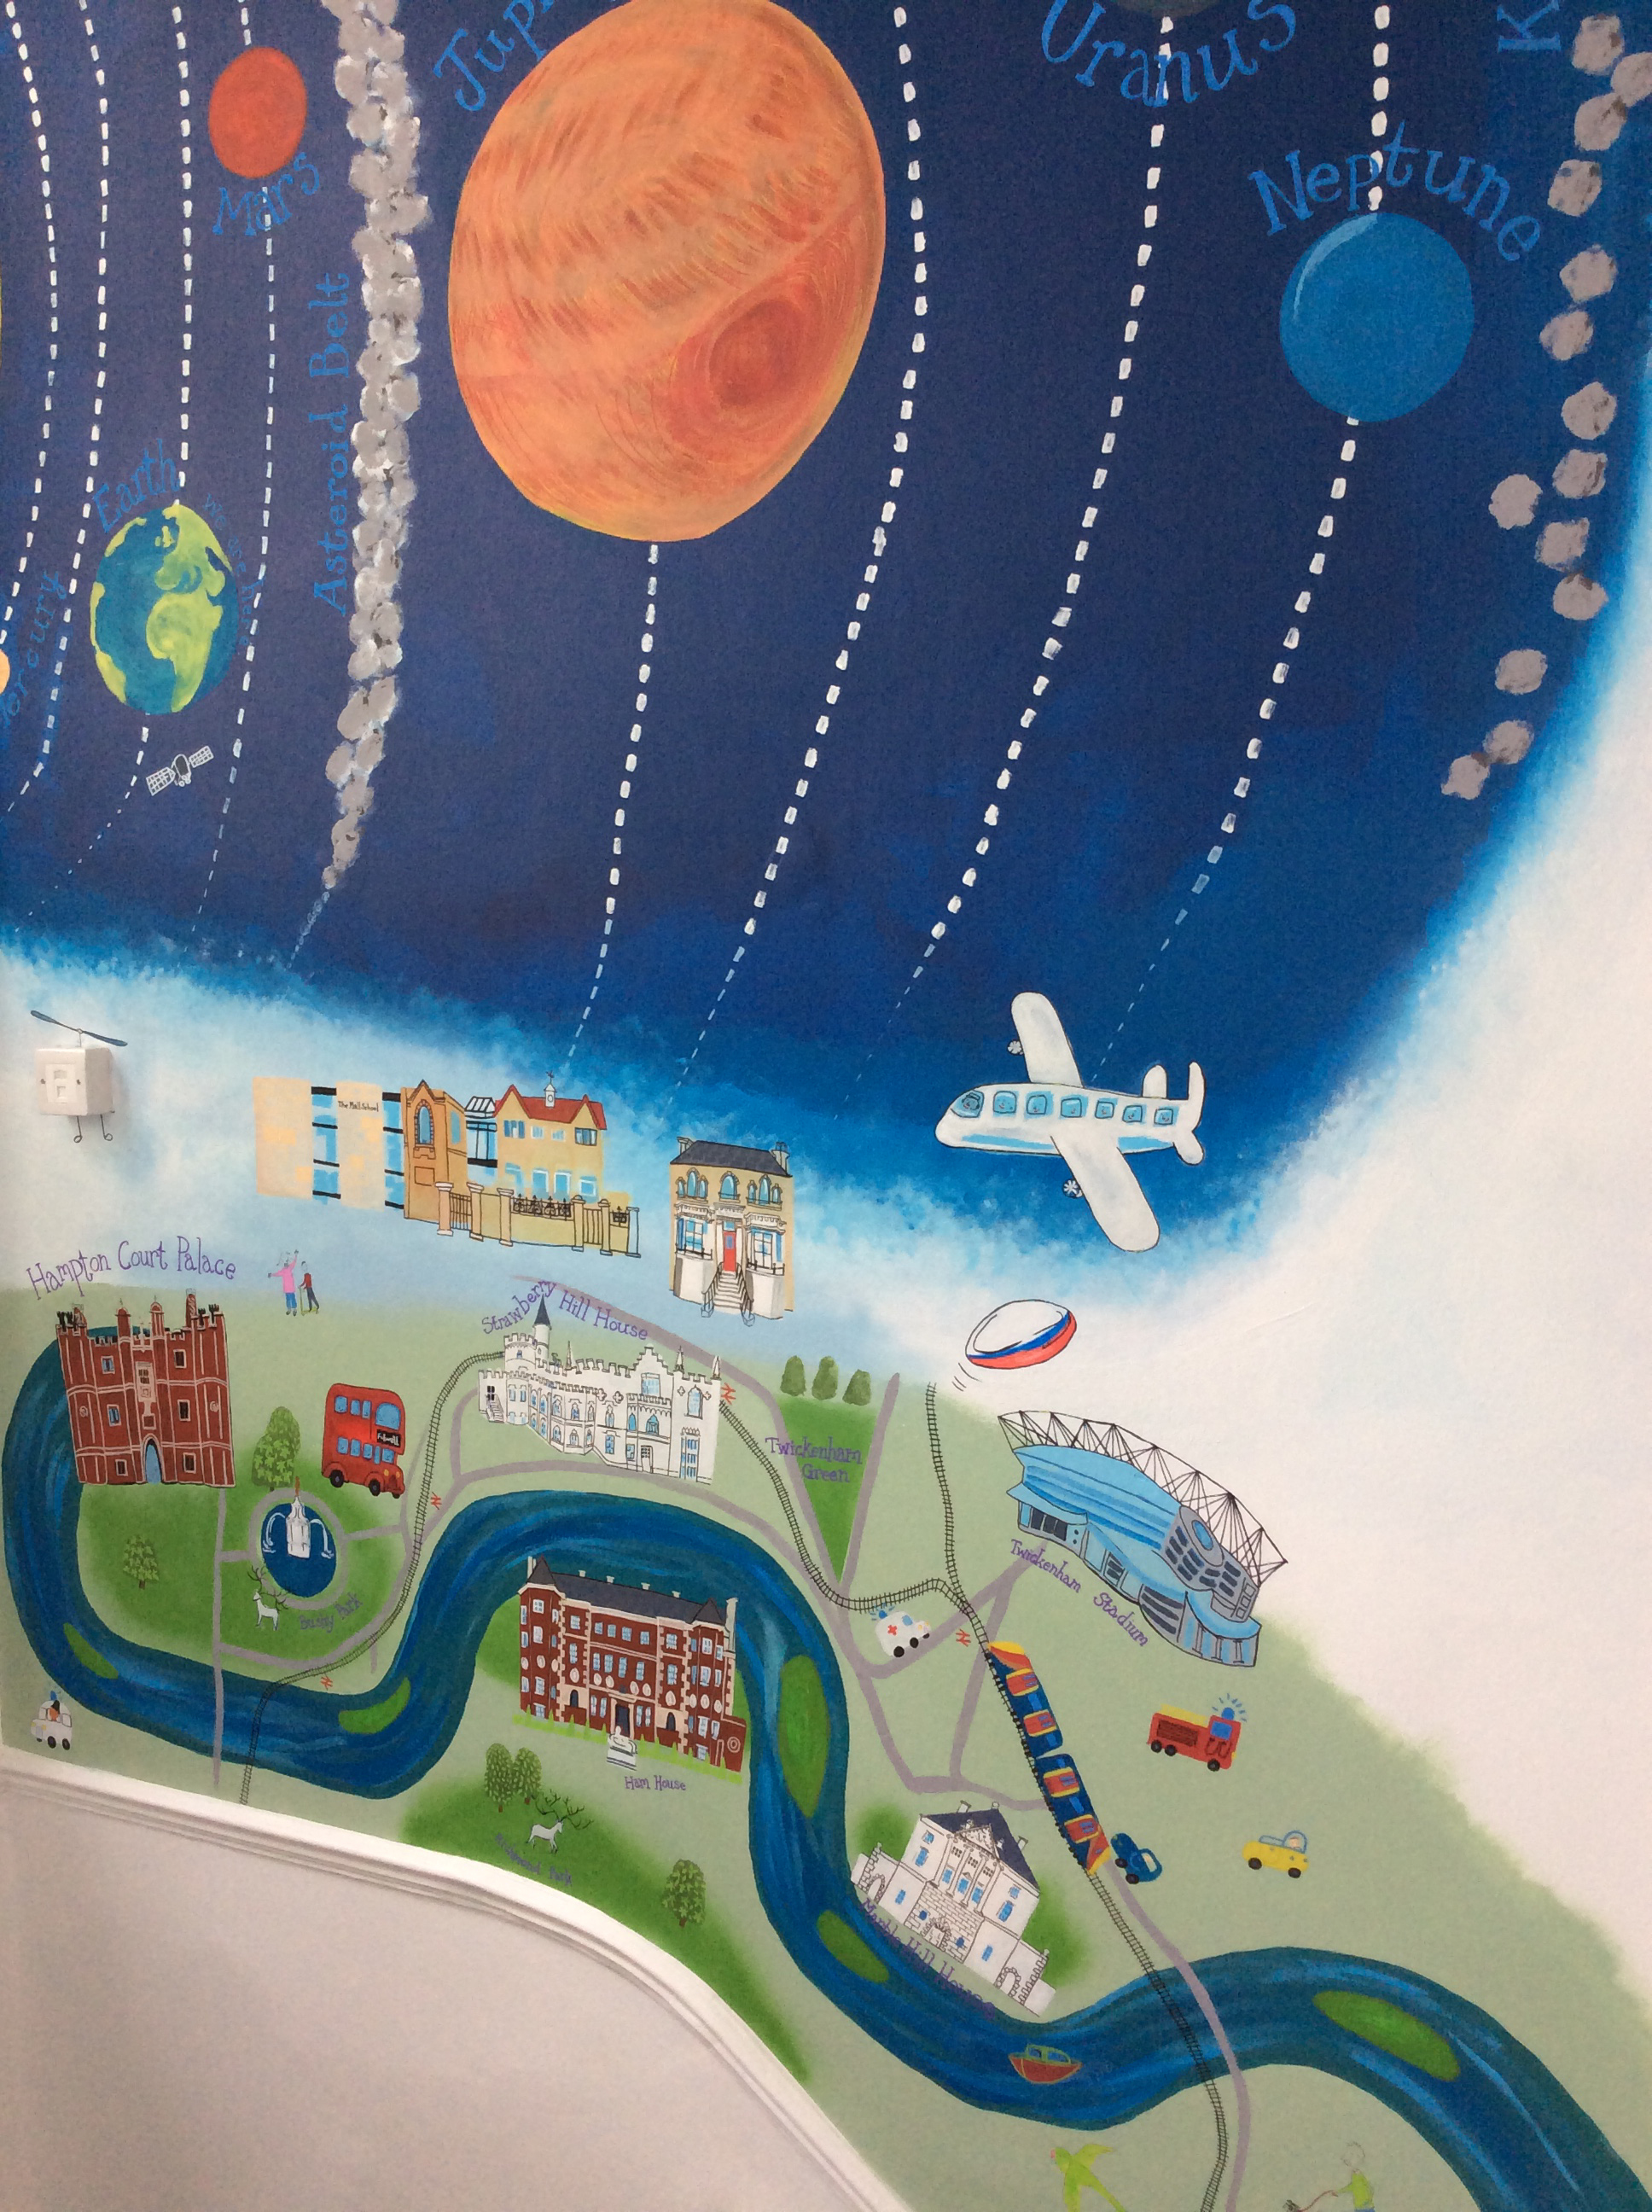 Section of a hand-painted mural at The Mall School